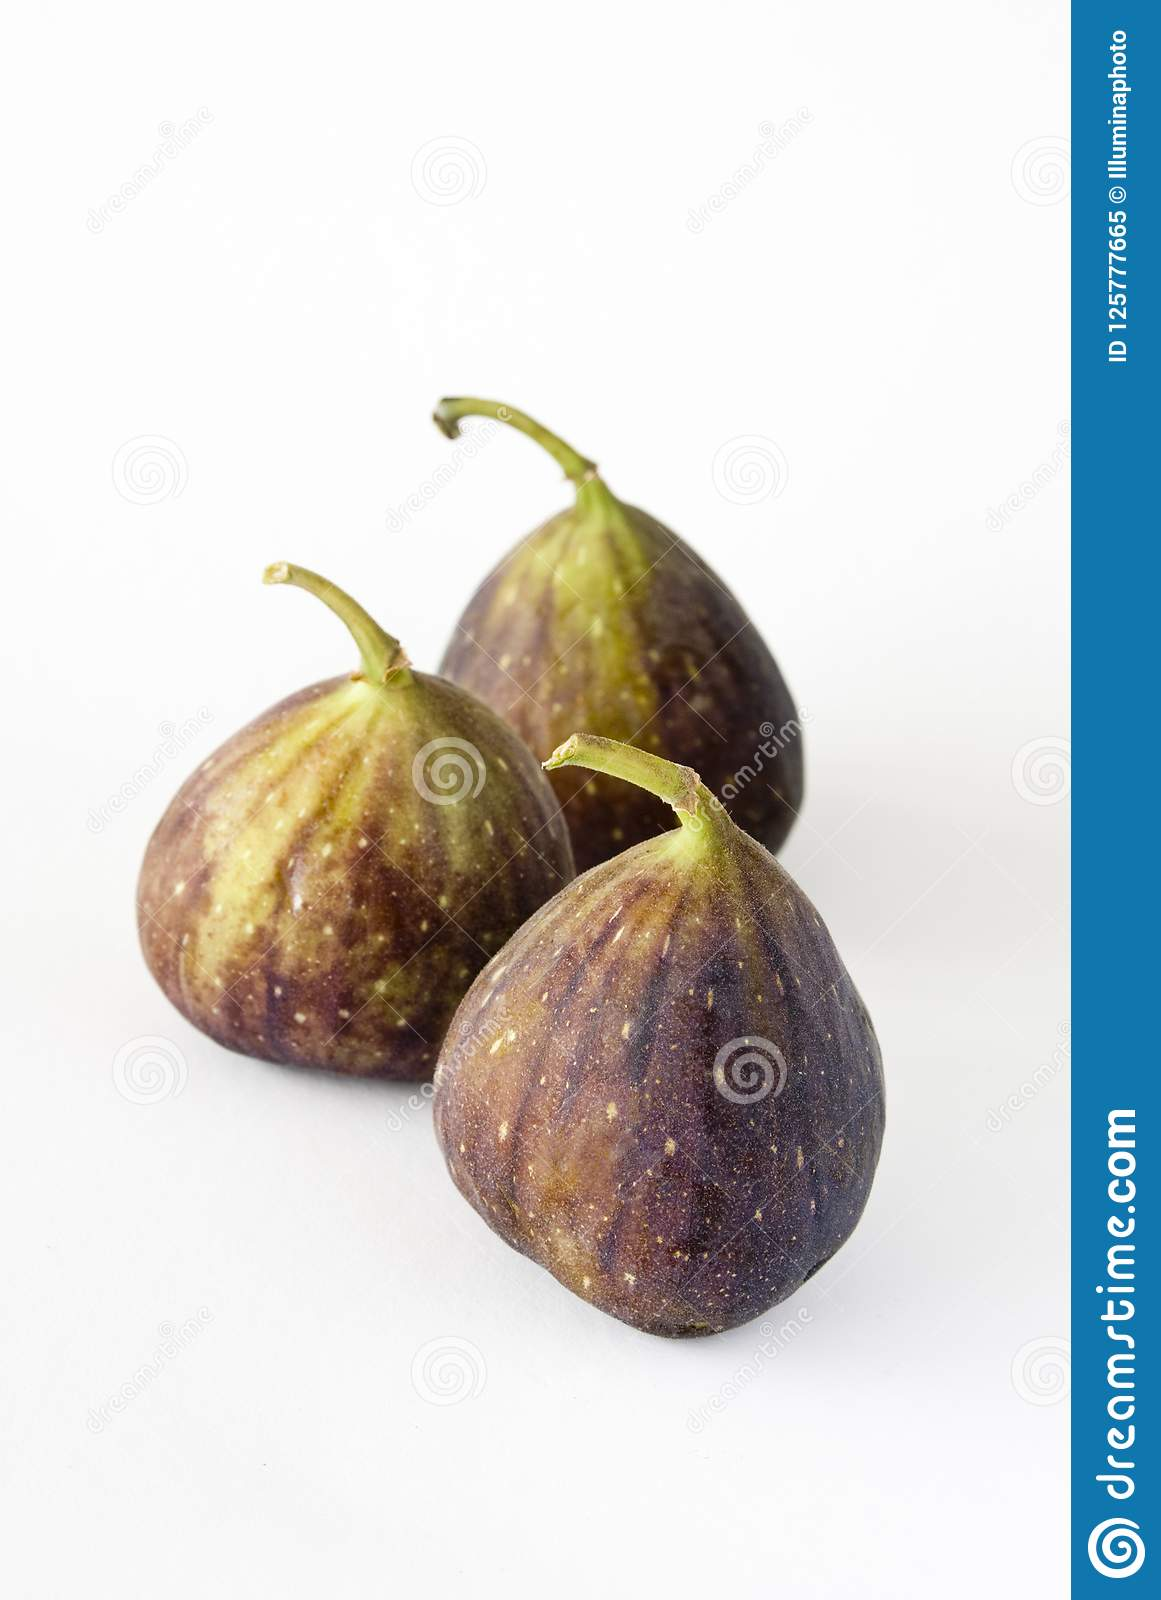 Three fig fruits on a white background.